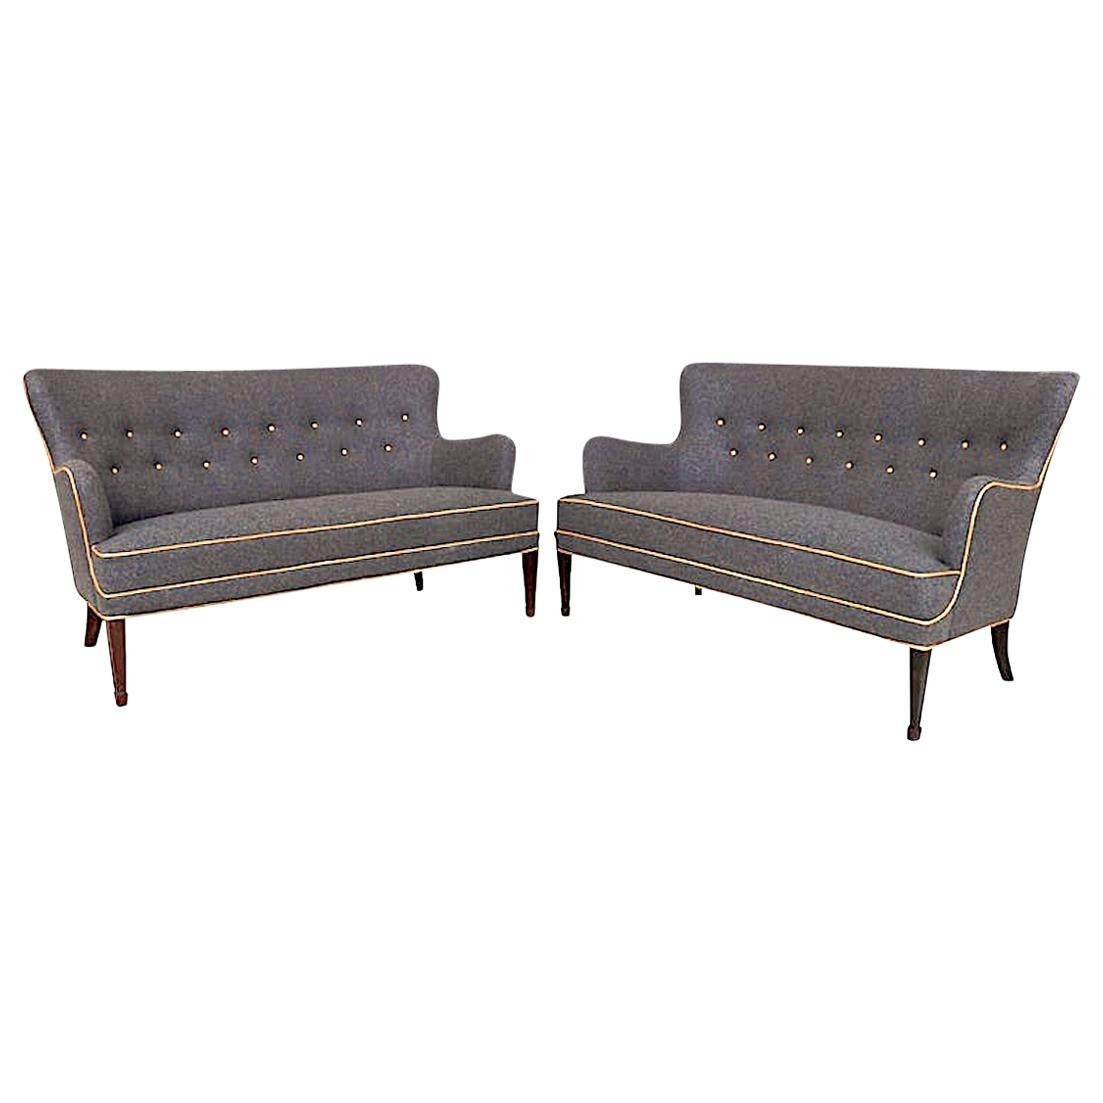 Pair of Sofas by Frits Henningsen